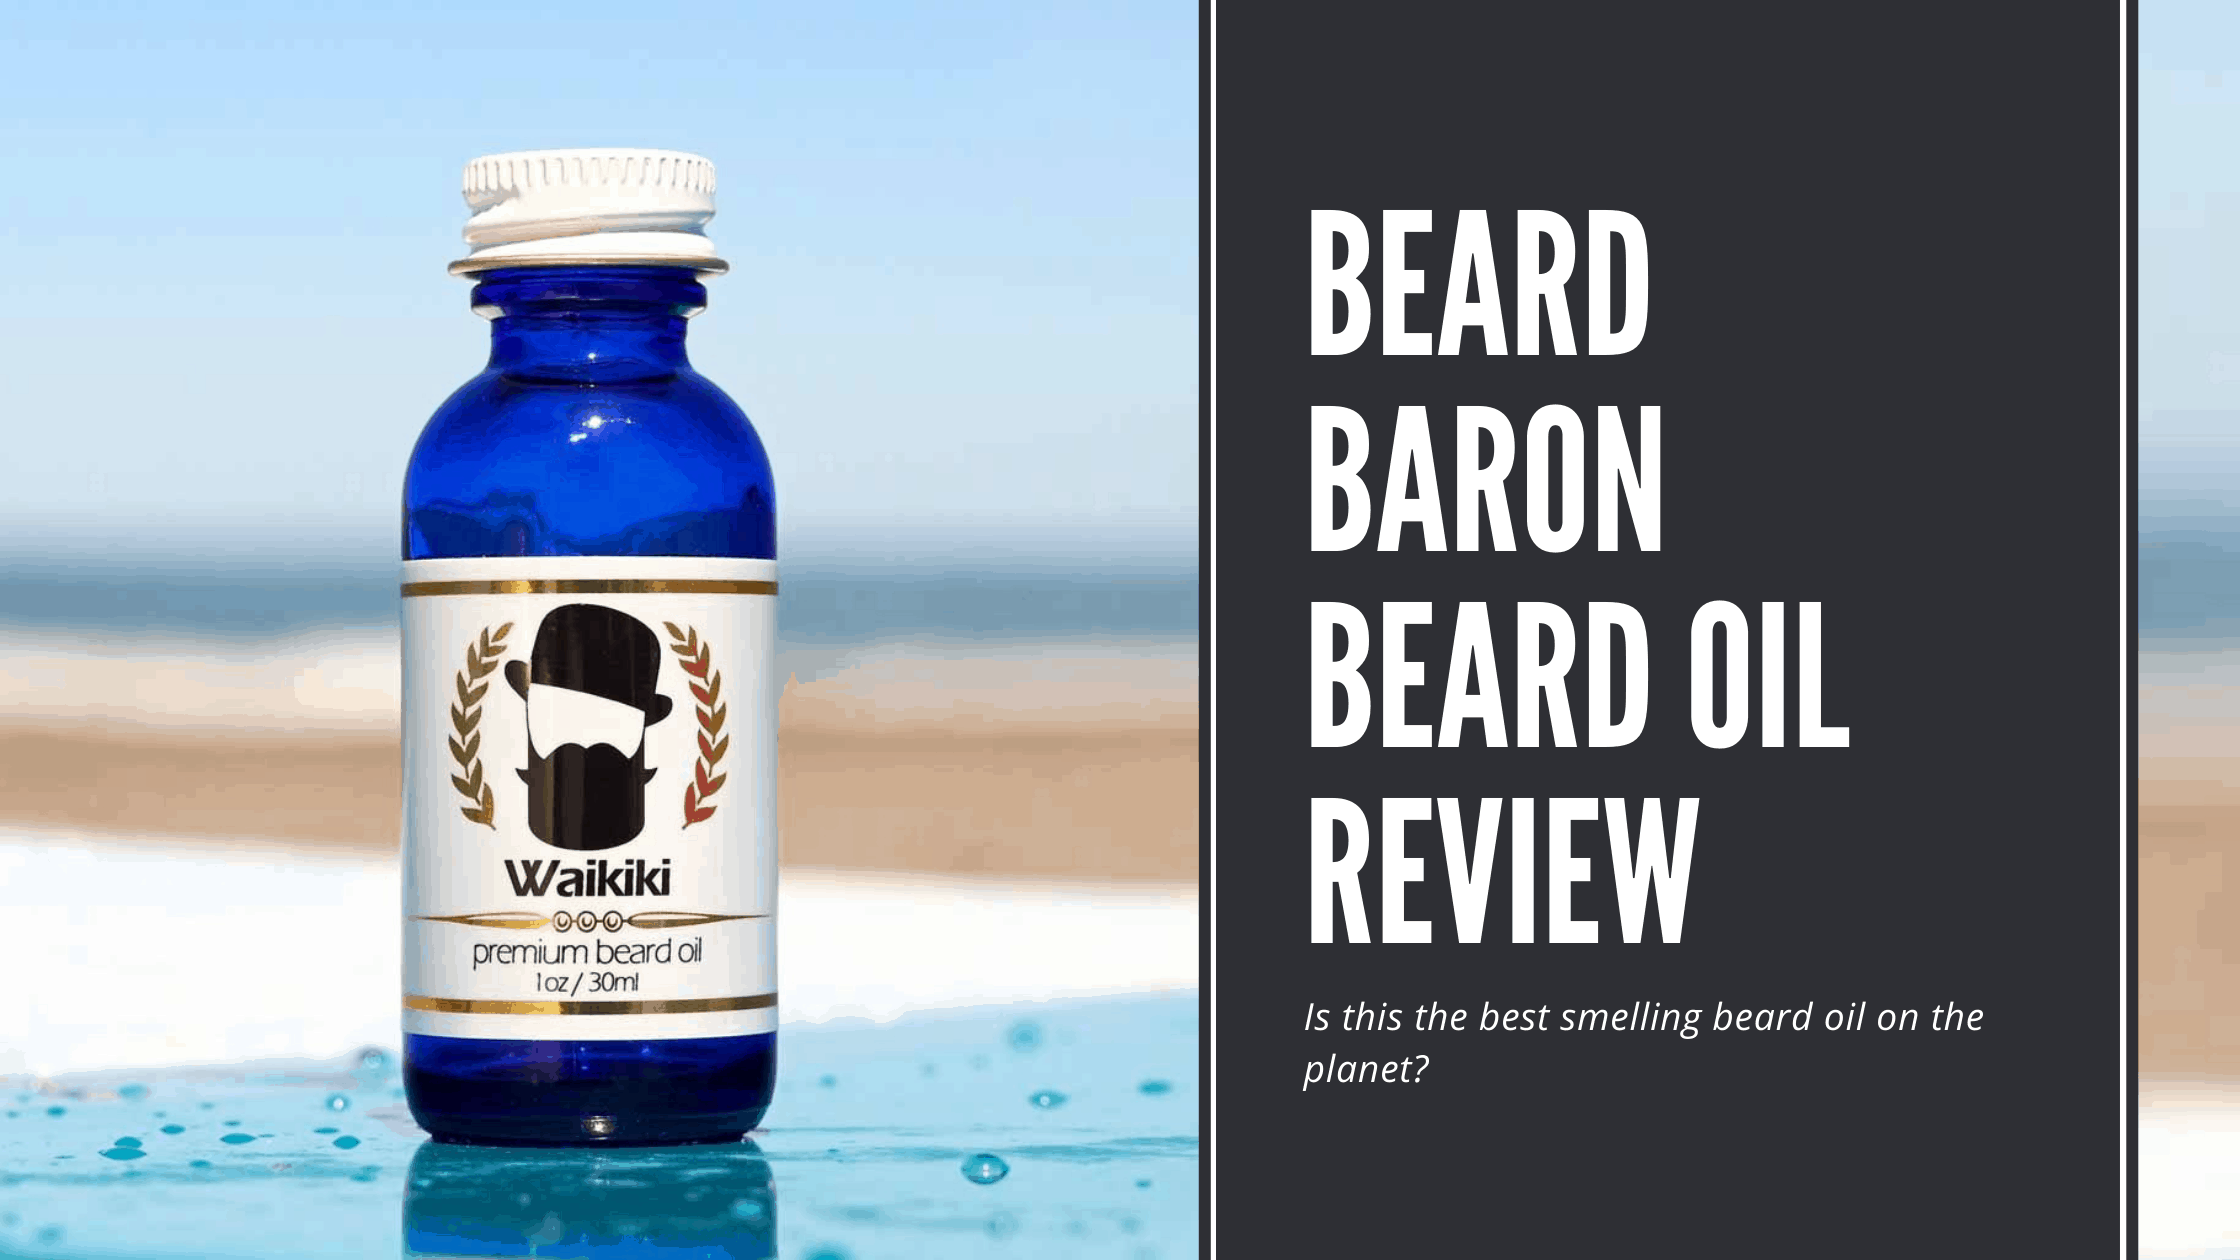 Dudefluencer: Beard Baron Beard Oil Review